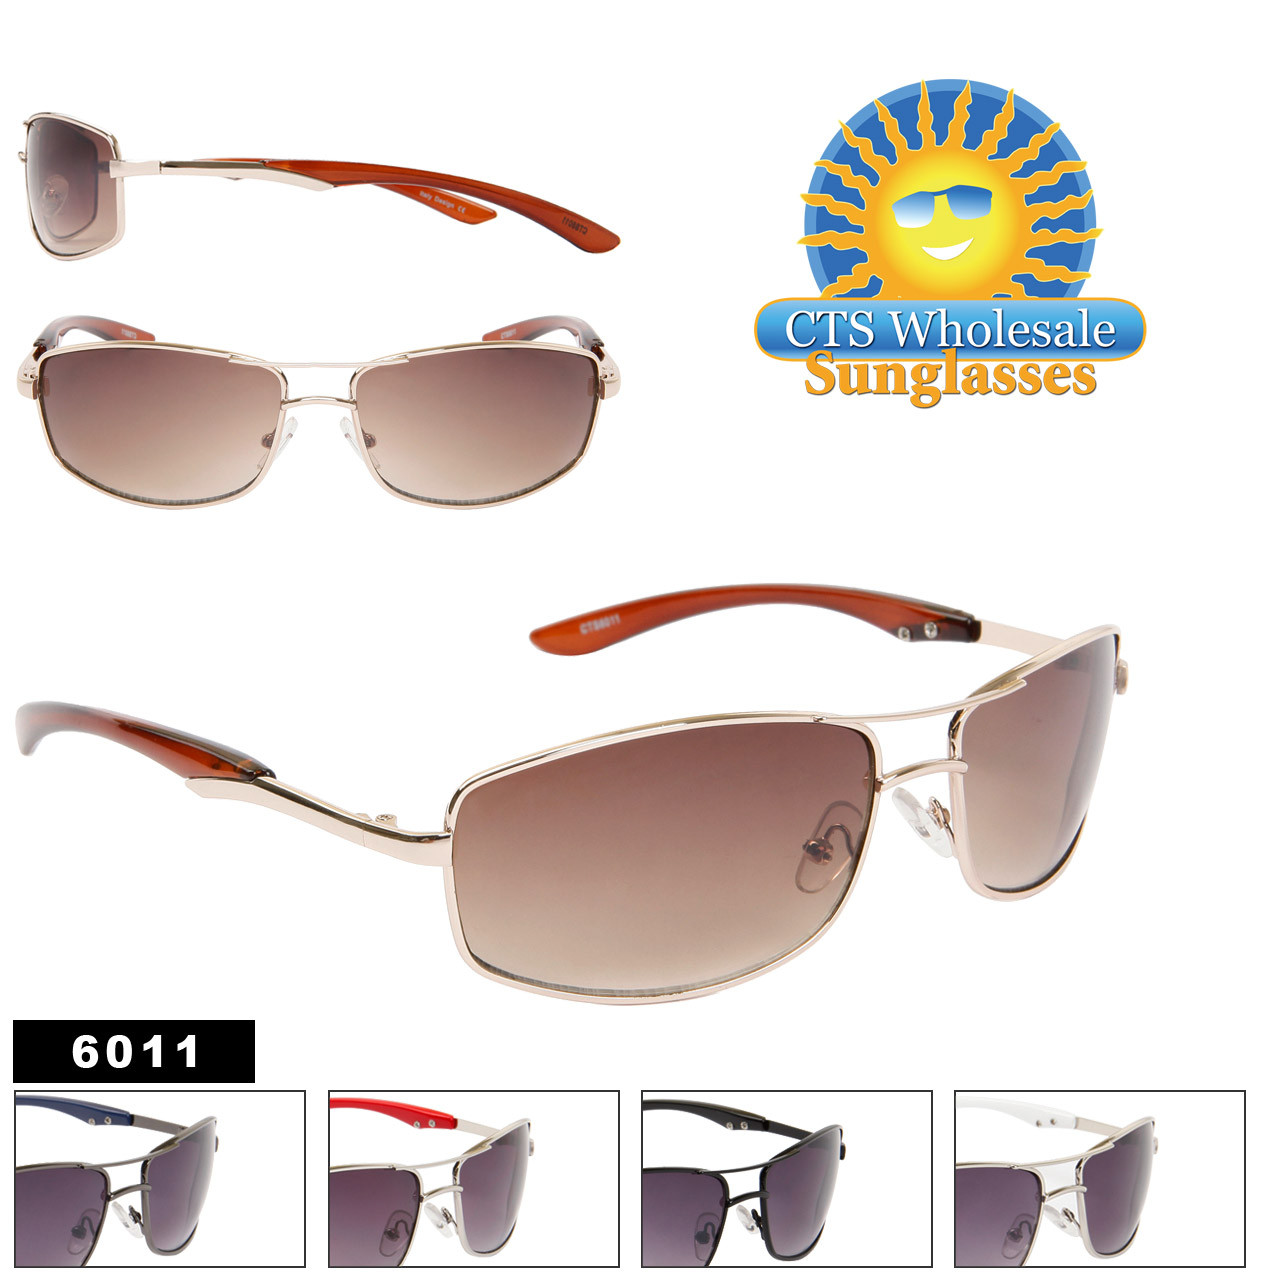 Unisex Sunglasses 6011